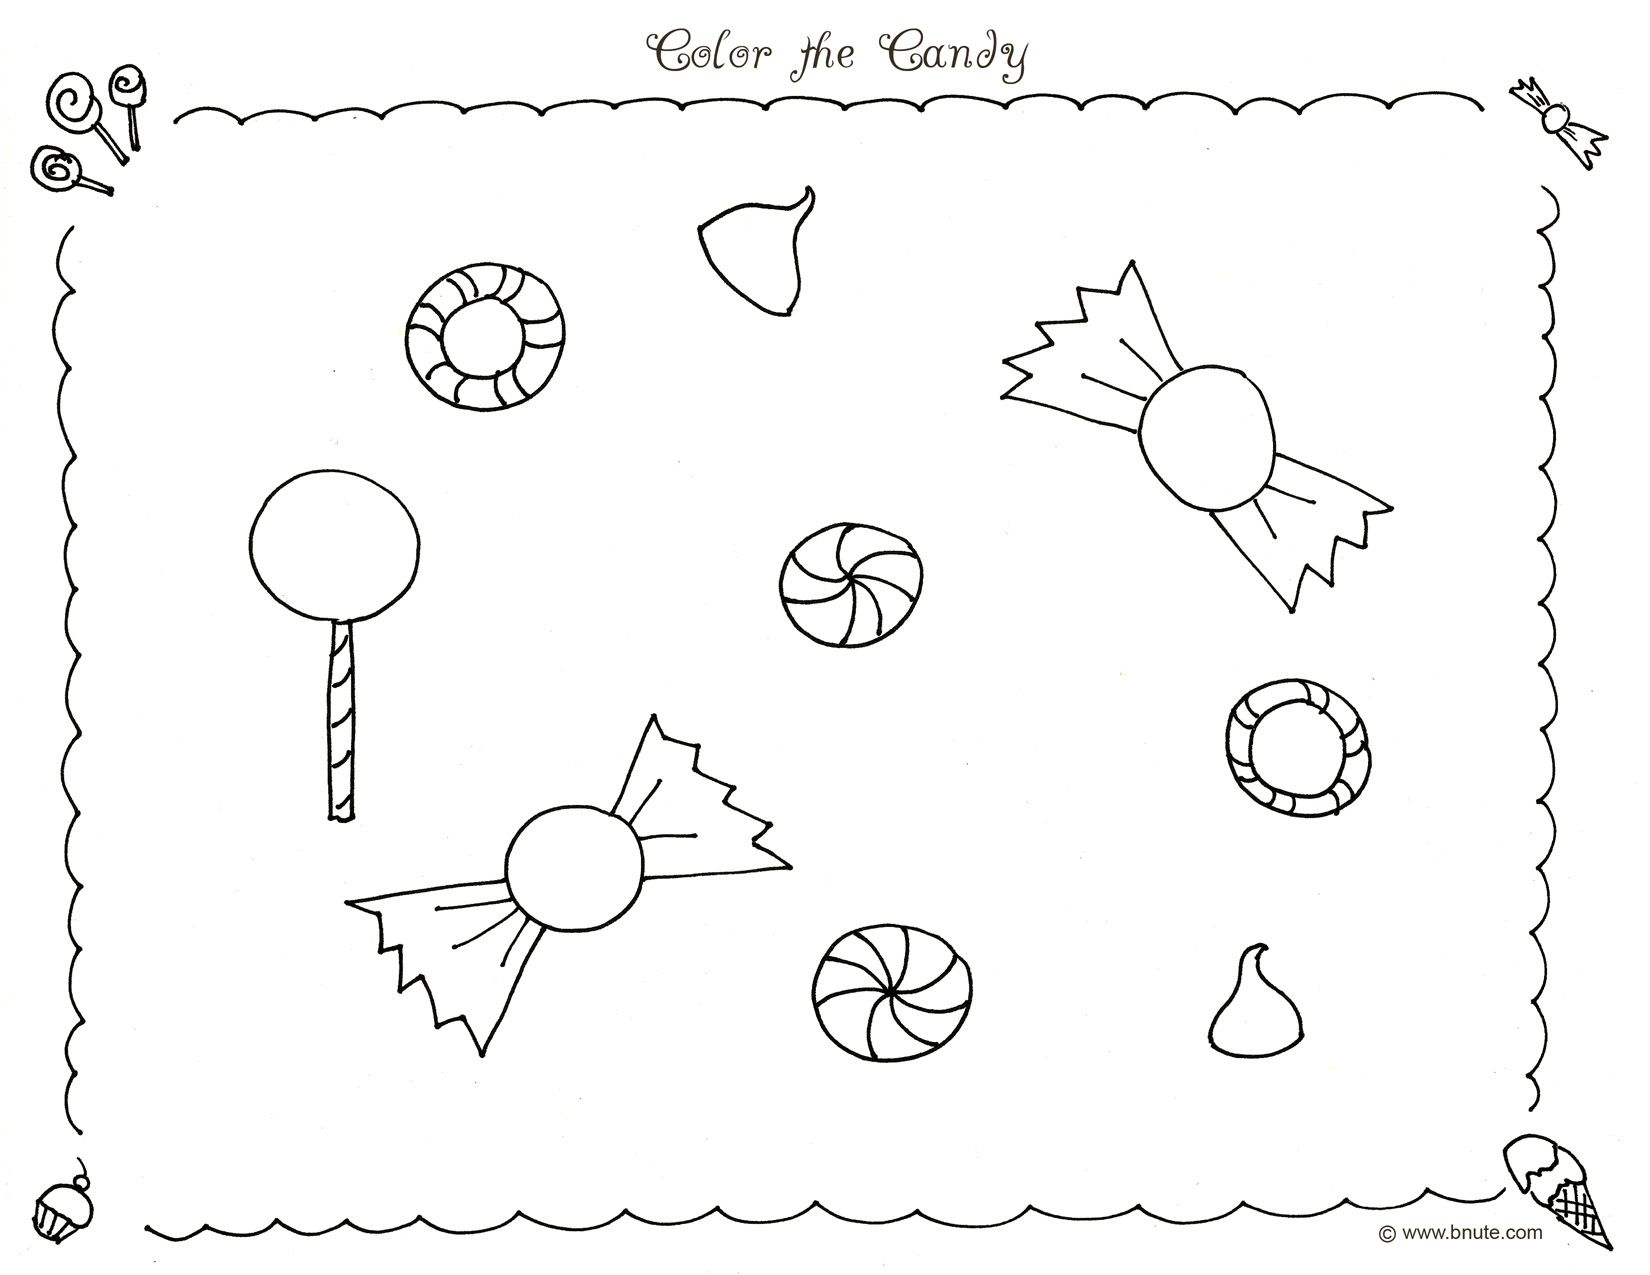 Color the Candy Coloring Page by B.Nute productions | * CHARLIE ...